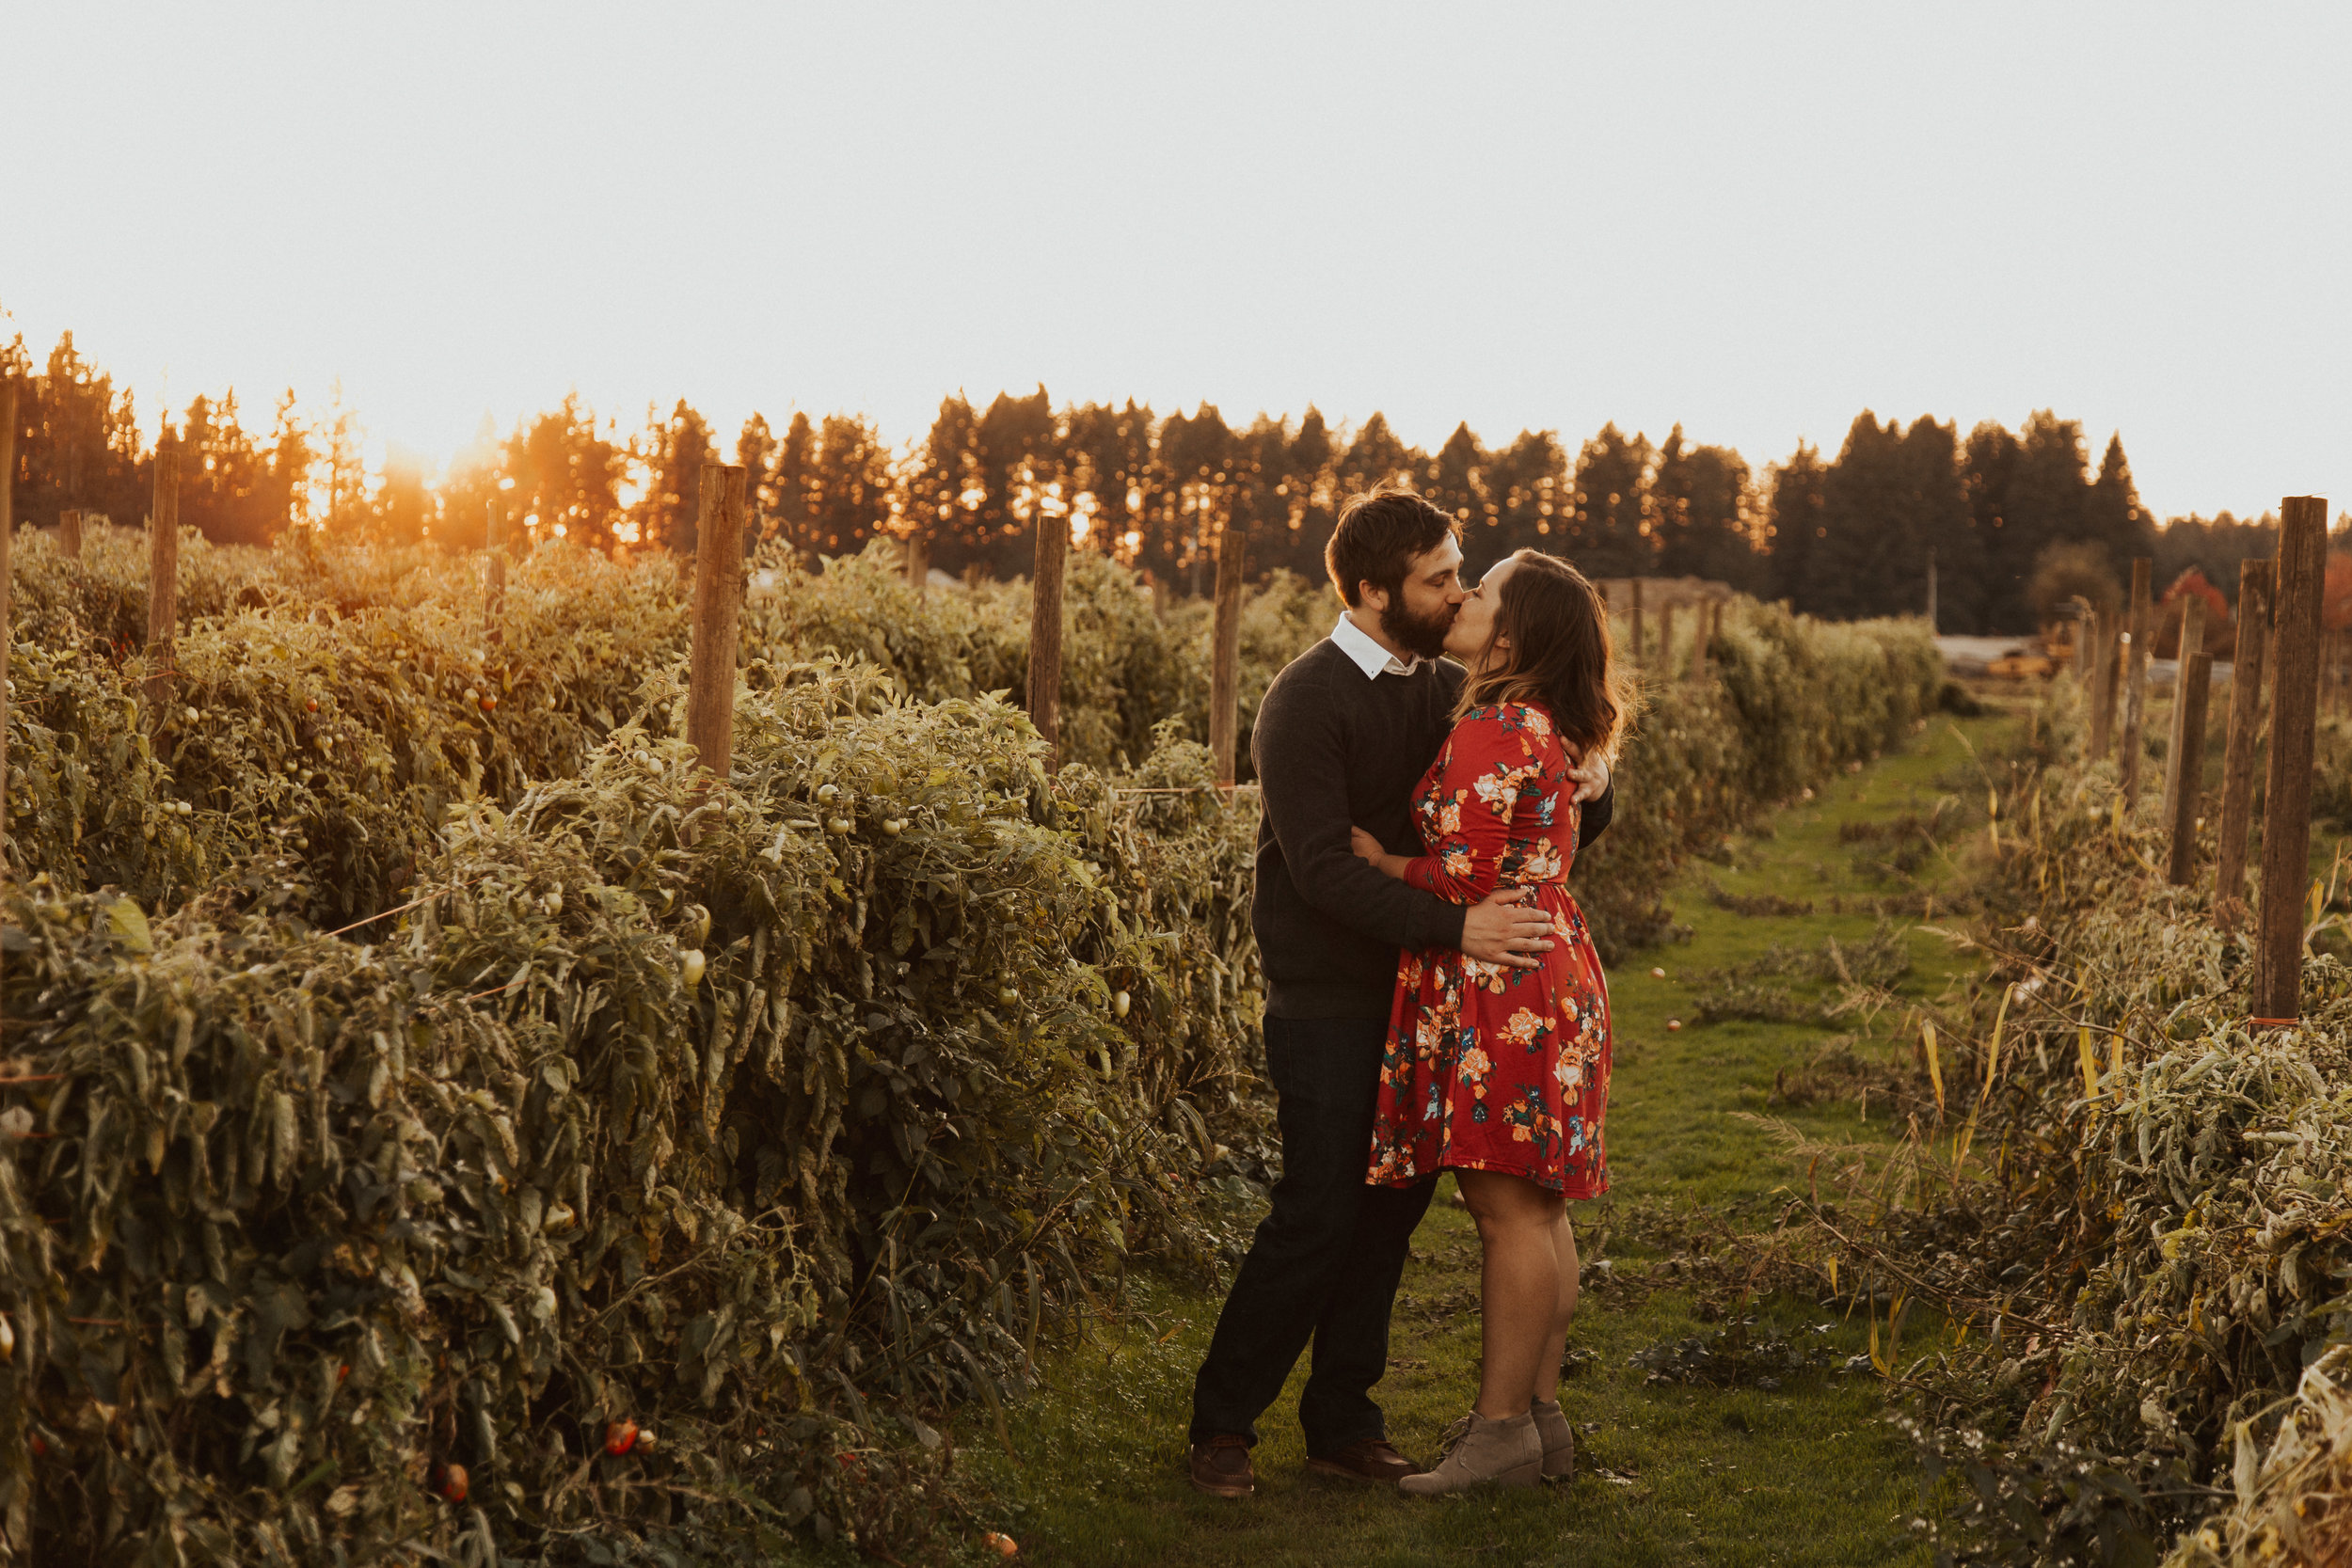 August-Muse-images-taylor-kelsey-vancouver-pumpkin-patch-washington-engagement-11.jpg